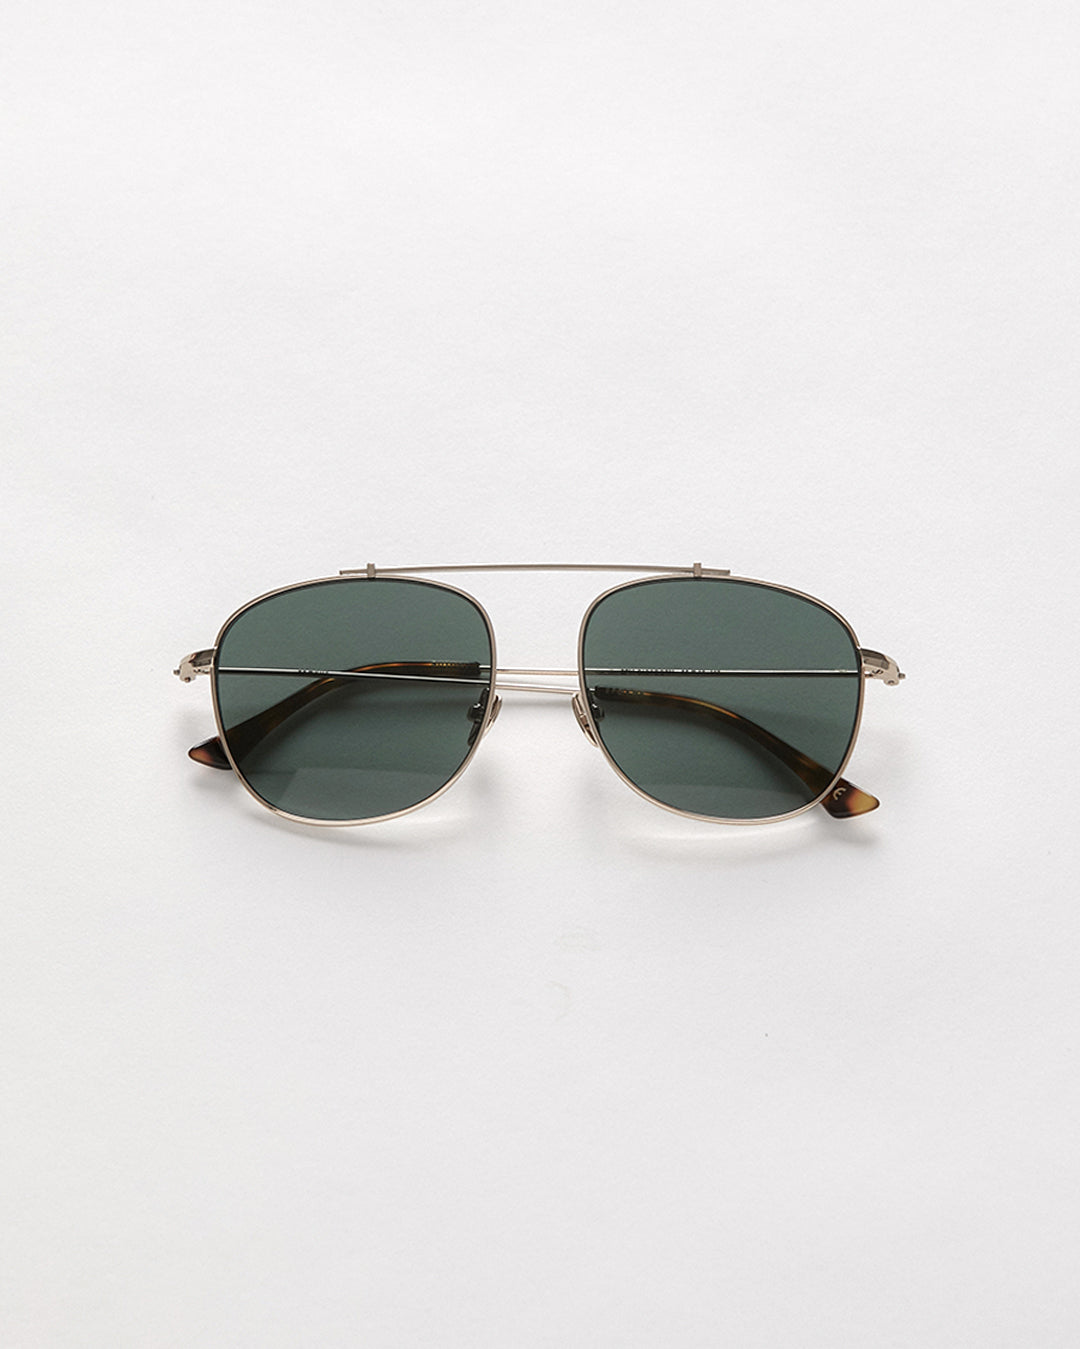 Notomy - Gold Antique / Green